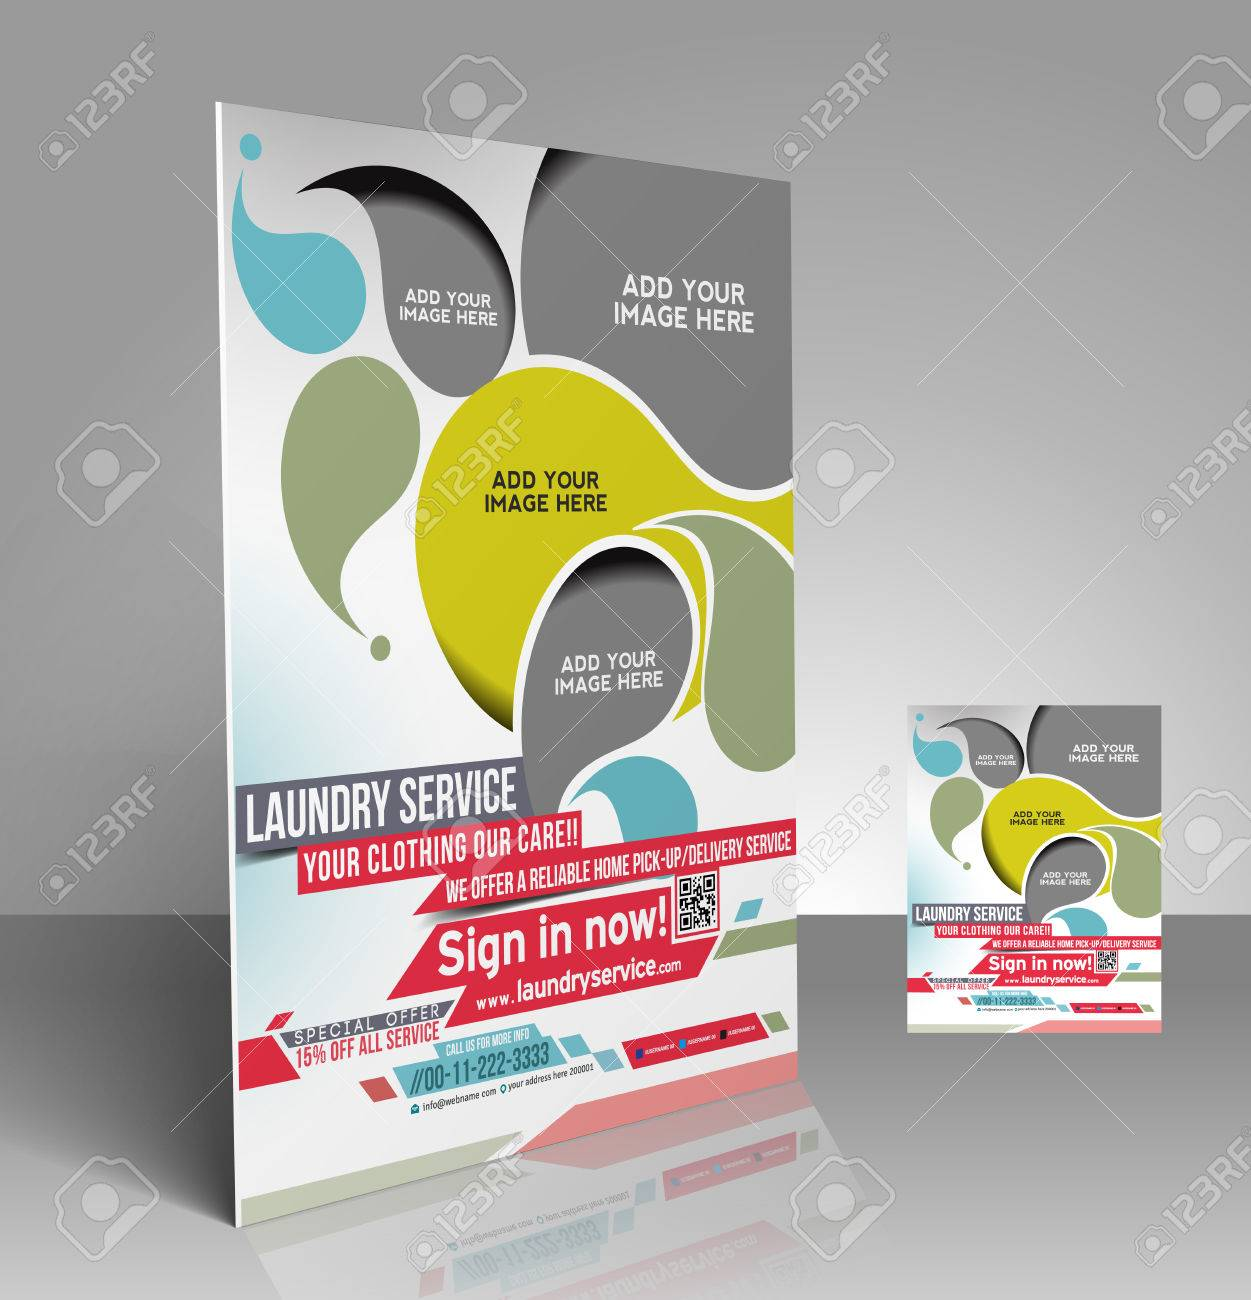 laundry service flyer poster template design royalty laundry service flyer poster template design stock vector 28113926